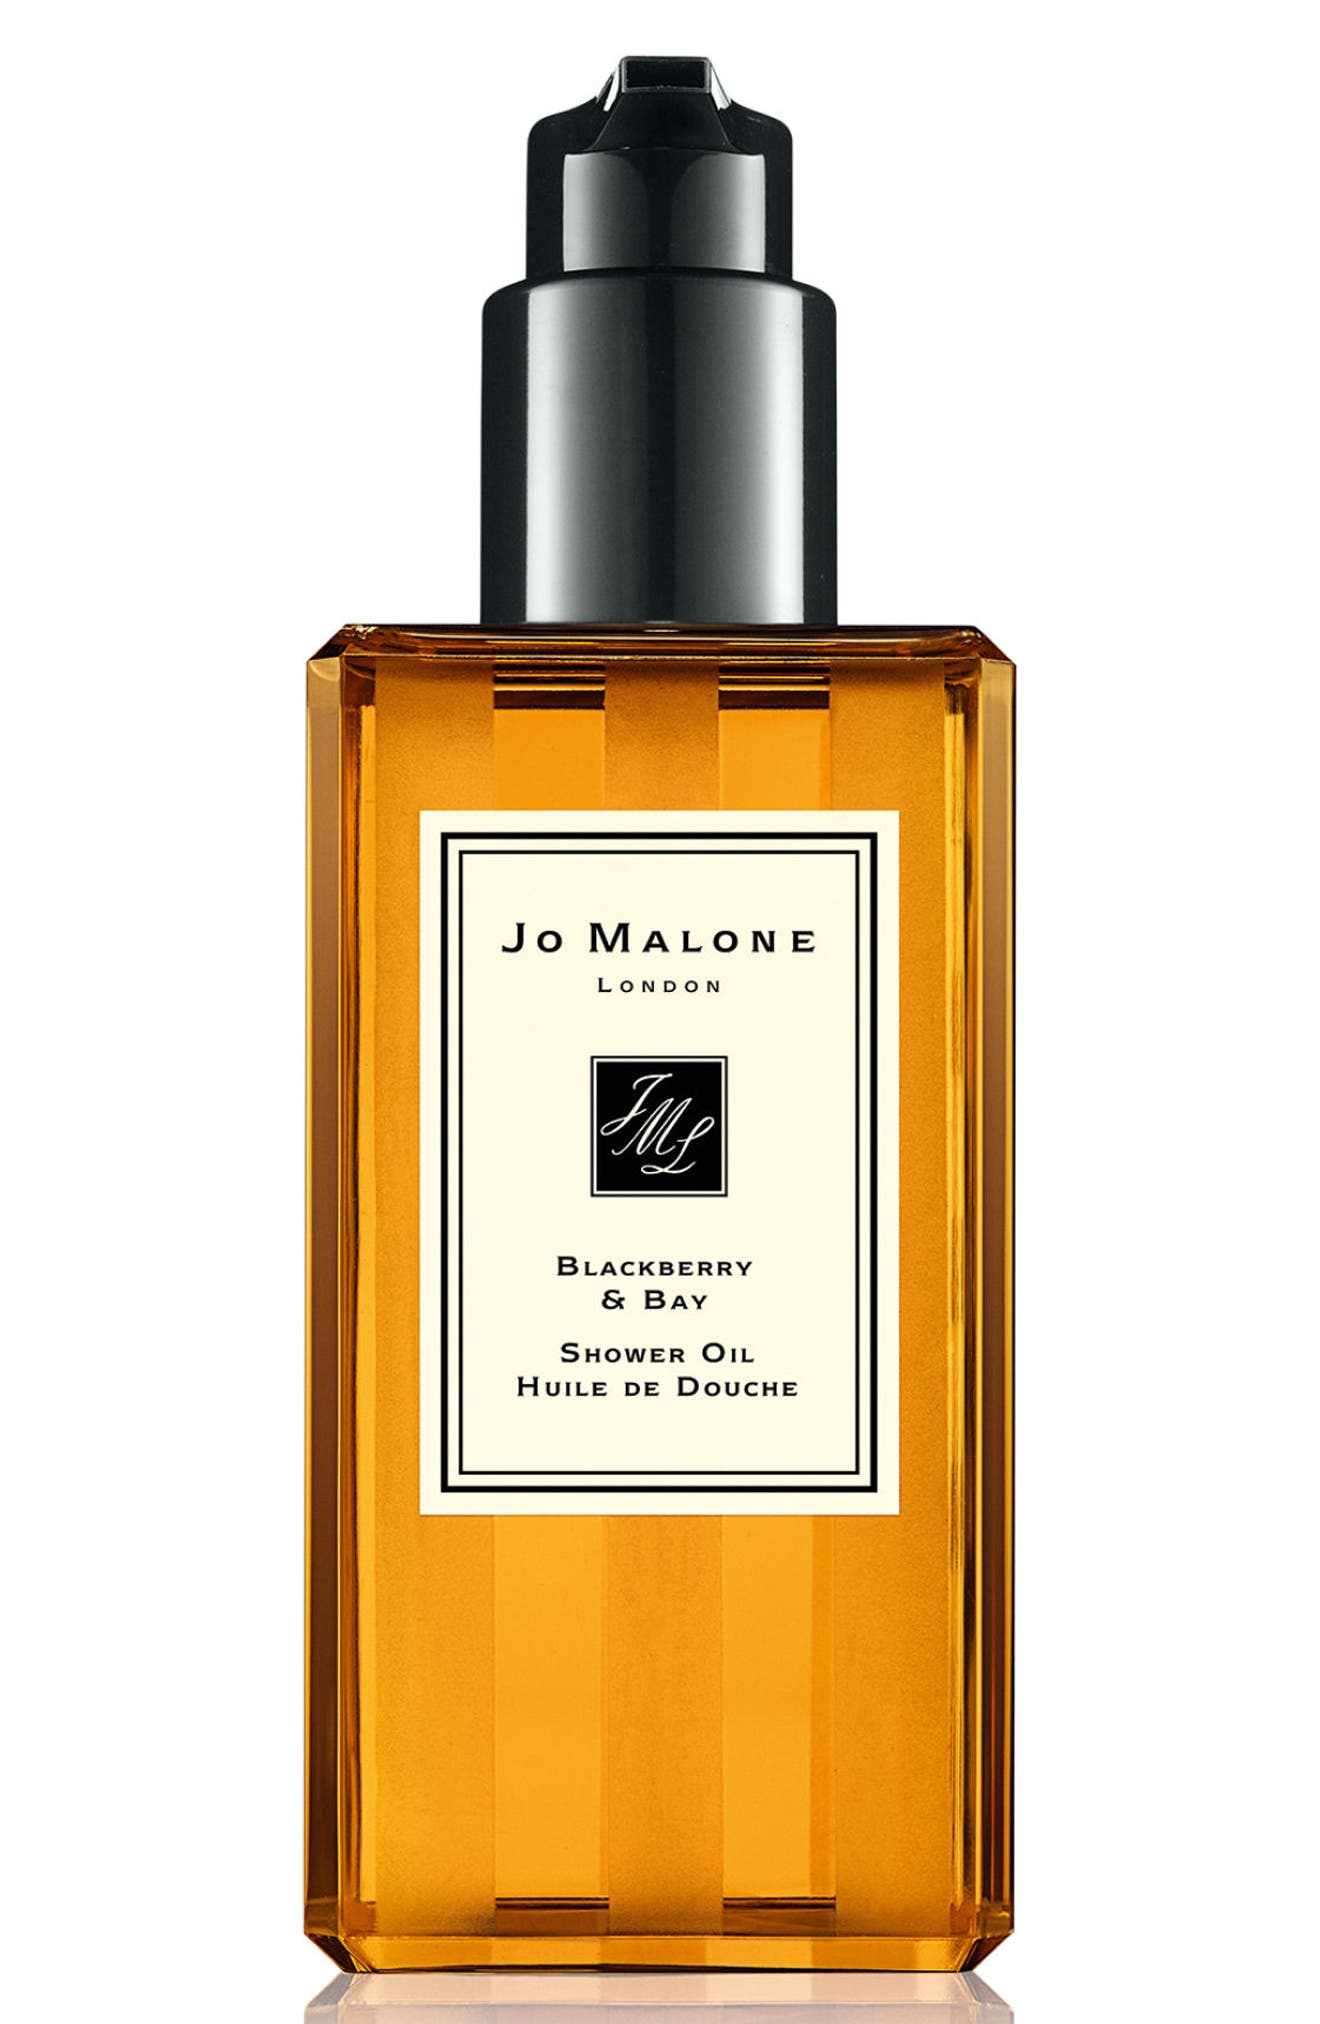 Jo Malone London™ 'Blackberry & Bay' Bath Oil (8.5 oz.)